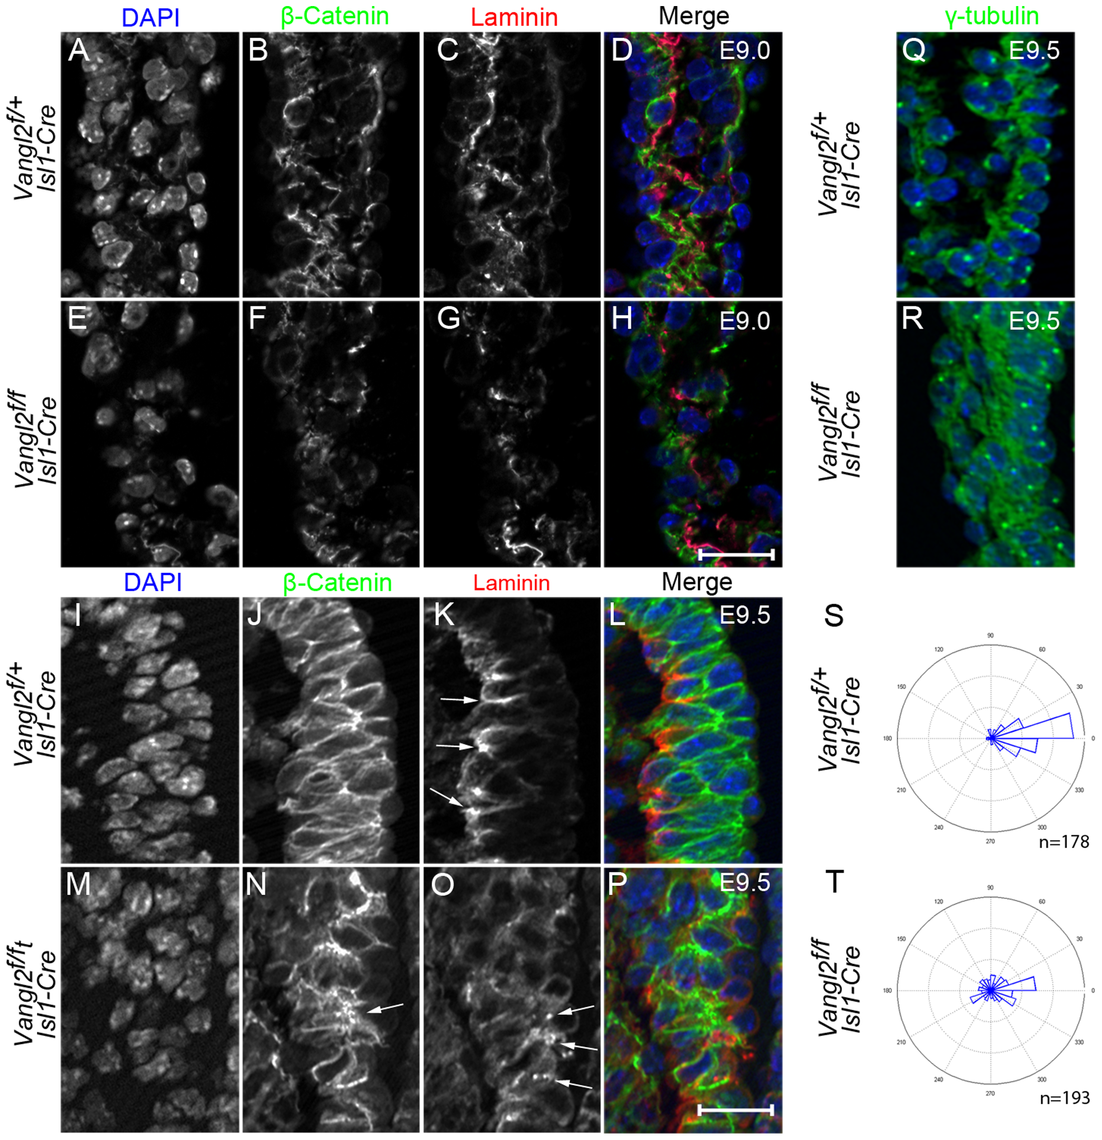 Disruption of epithelial organisation in the distal outflow tract of <i>Vangl2<sup>flox/flox</sup>; Isl1-Cre</i> embryos.